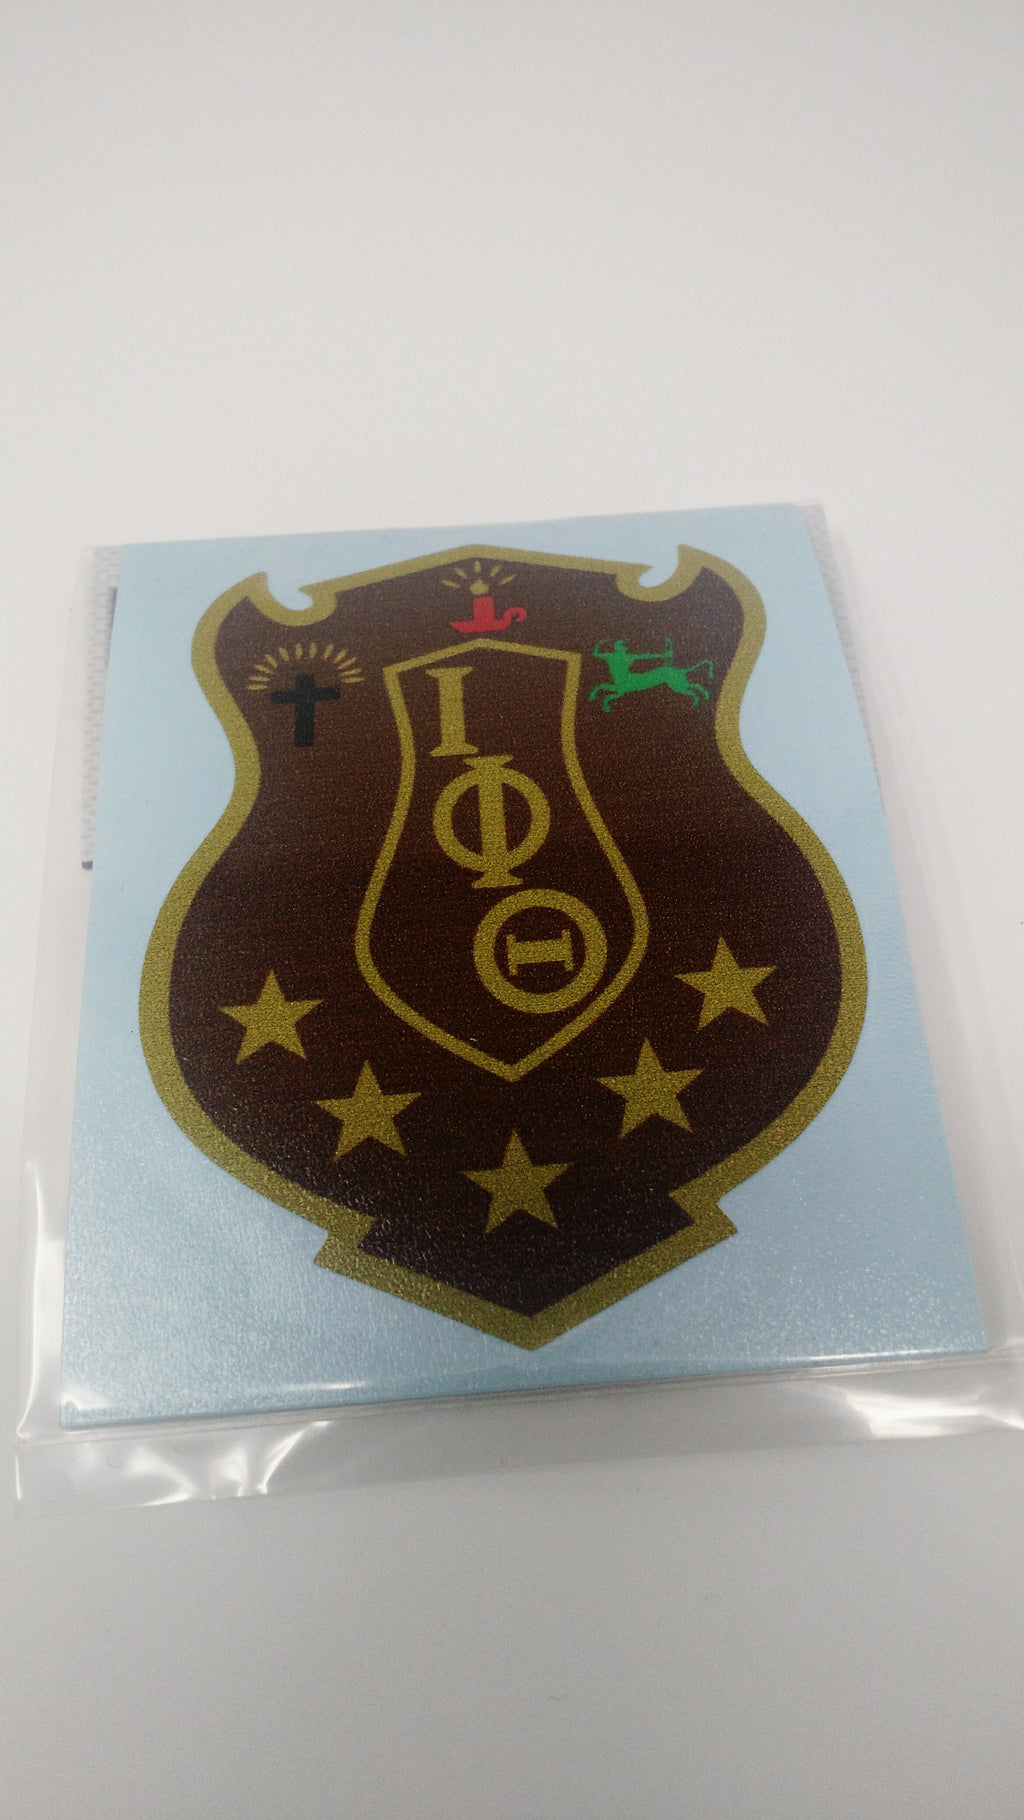 Iota Phi Theta Shield Decal